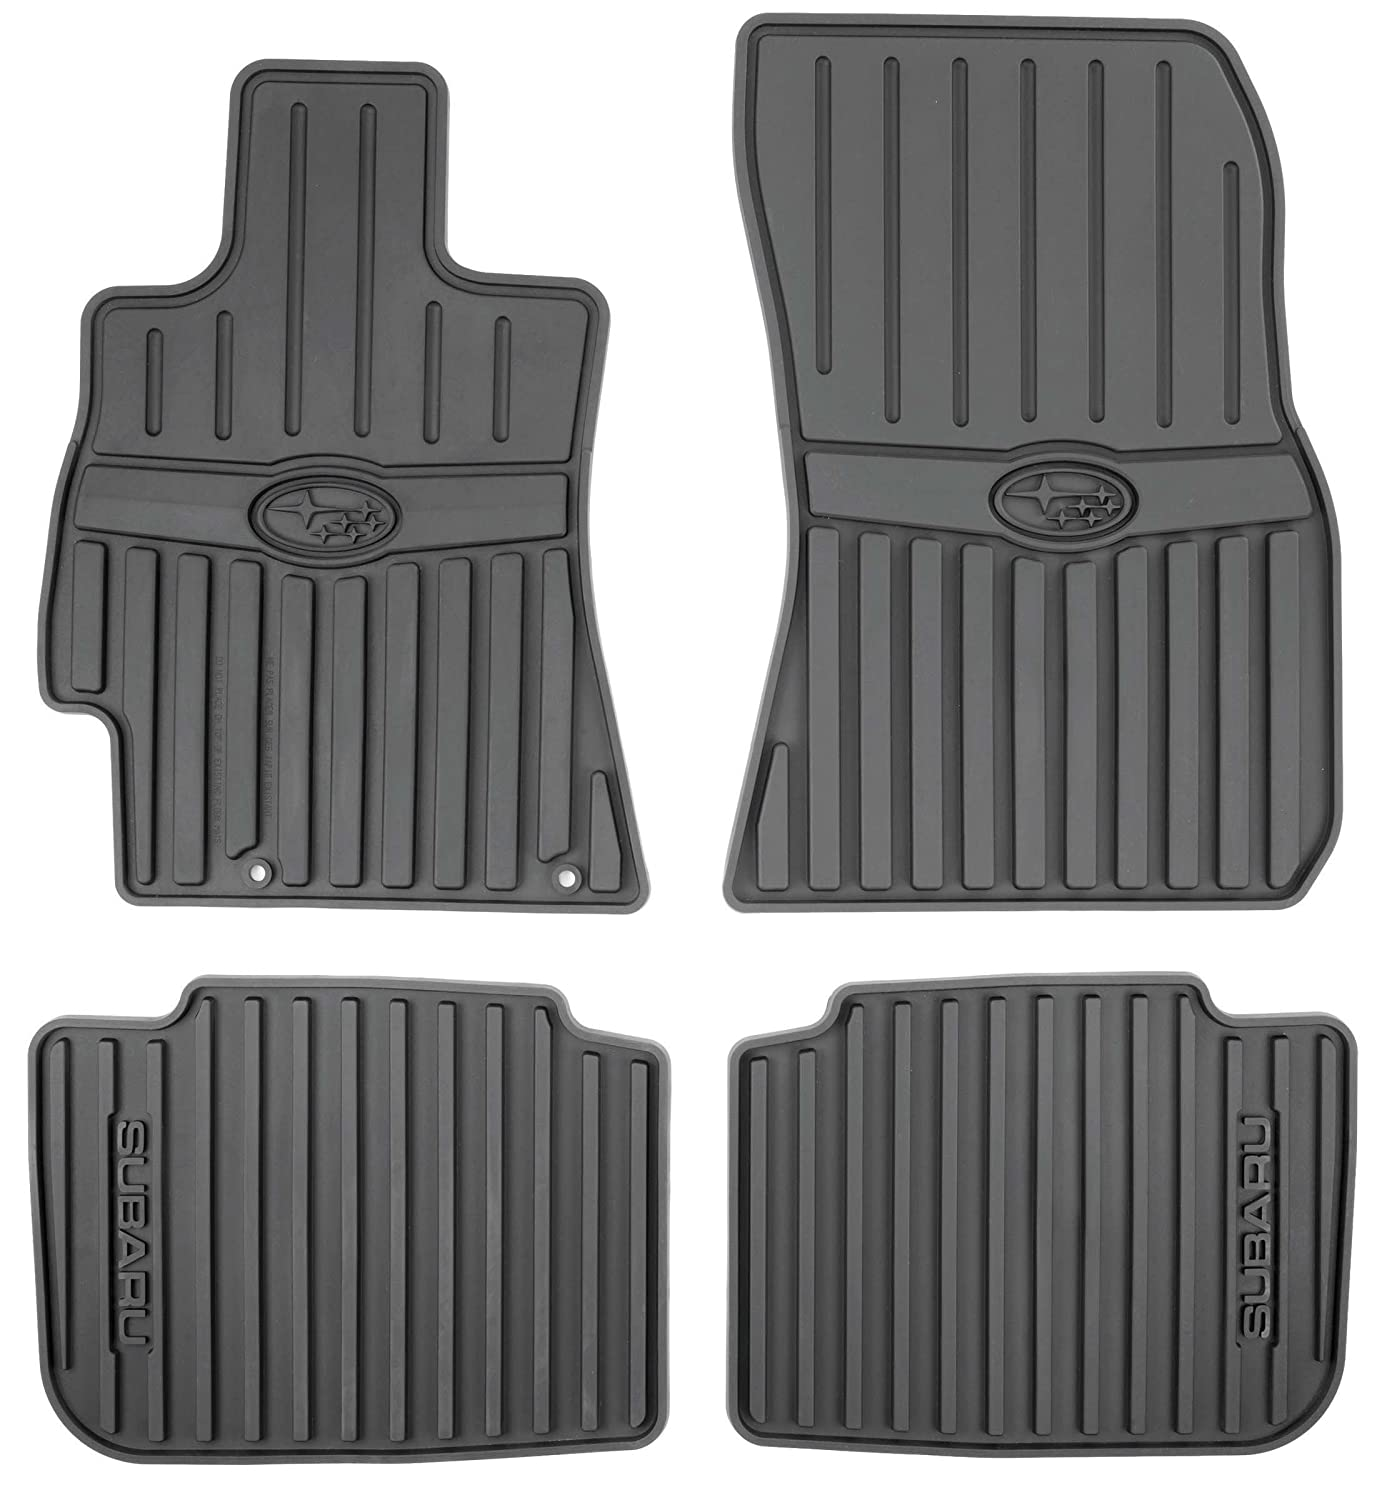 Rubber floor mats for jaguar xf - Rubber Floor Mats For Jaguar Xf 6